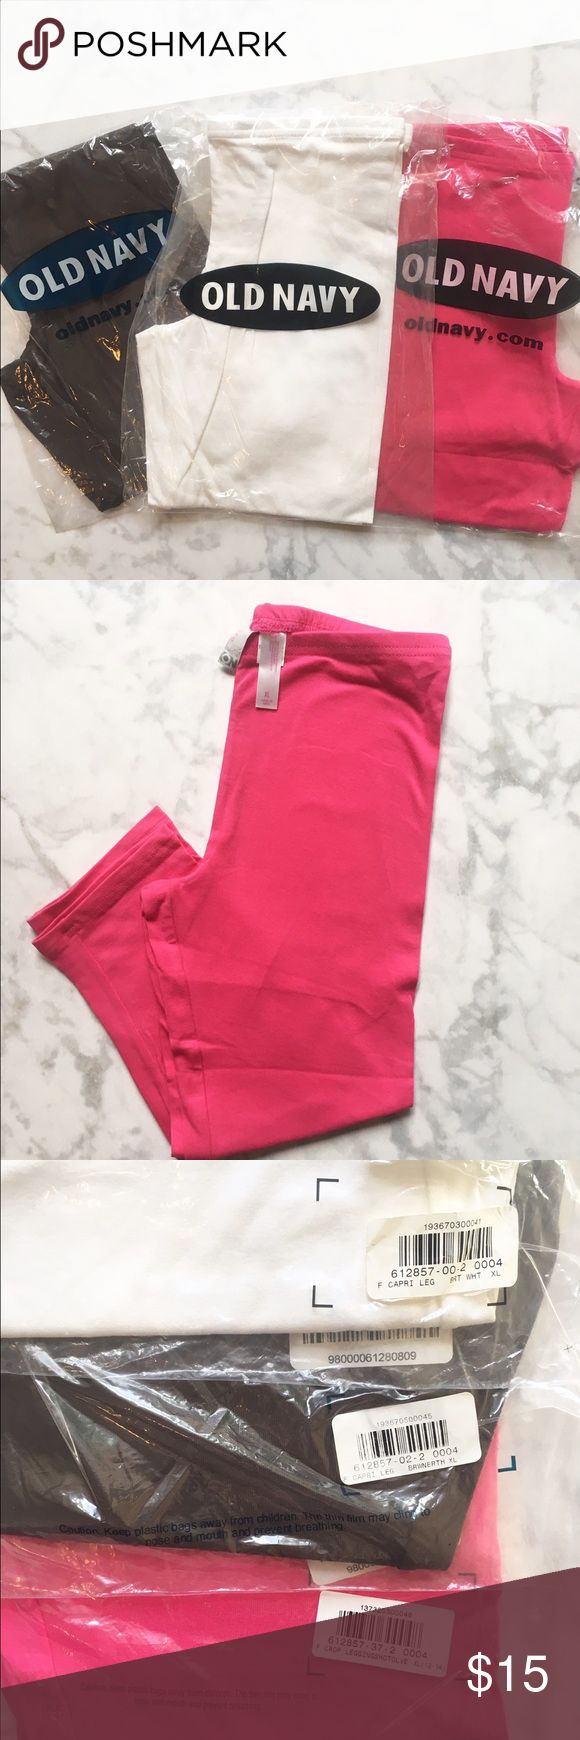 🌷NWT!🌷Set of 3 Capri Leggings 🌷NWT!🌷Girls Set of 3 Capri Leggings. Colors: Pink, White, and Black. Size XL. Great Staple Pieces to have! Old Navy Bottoms Leggings